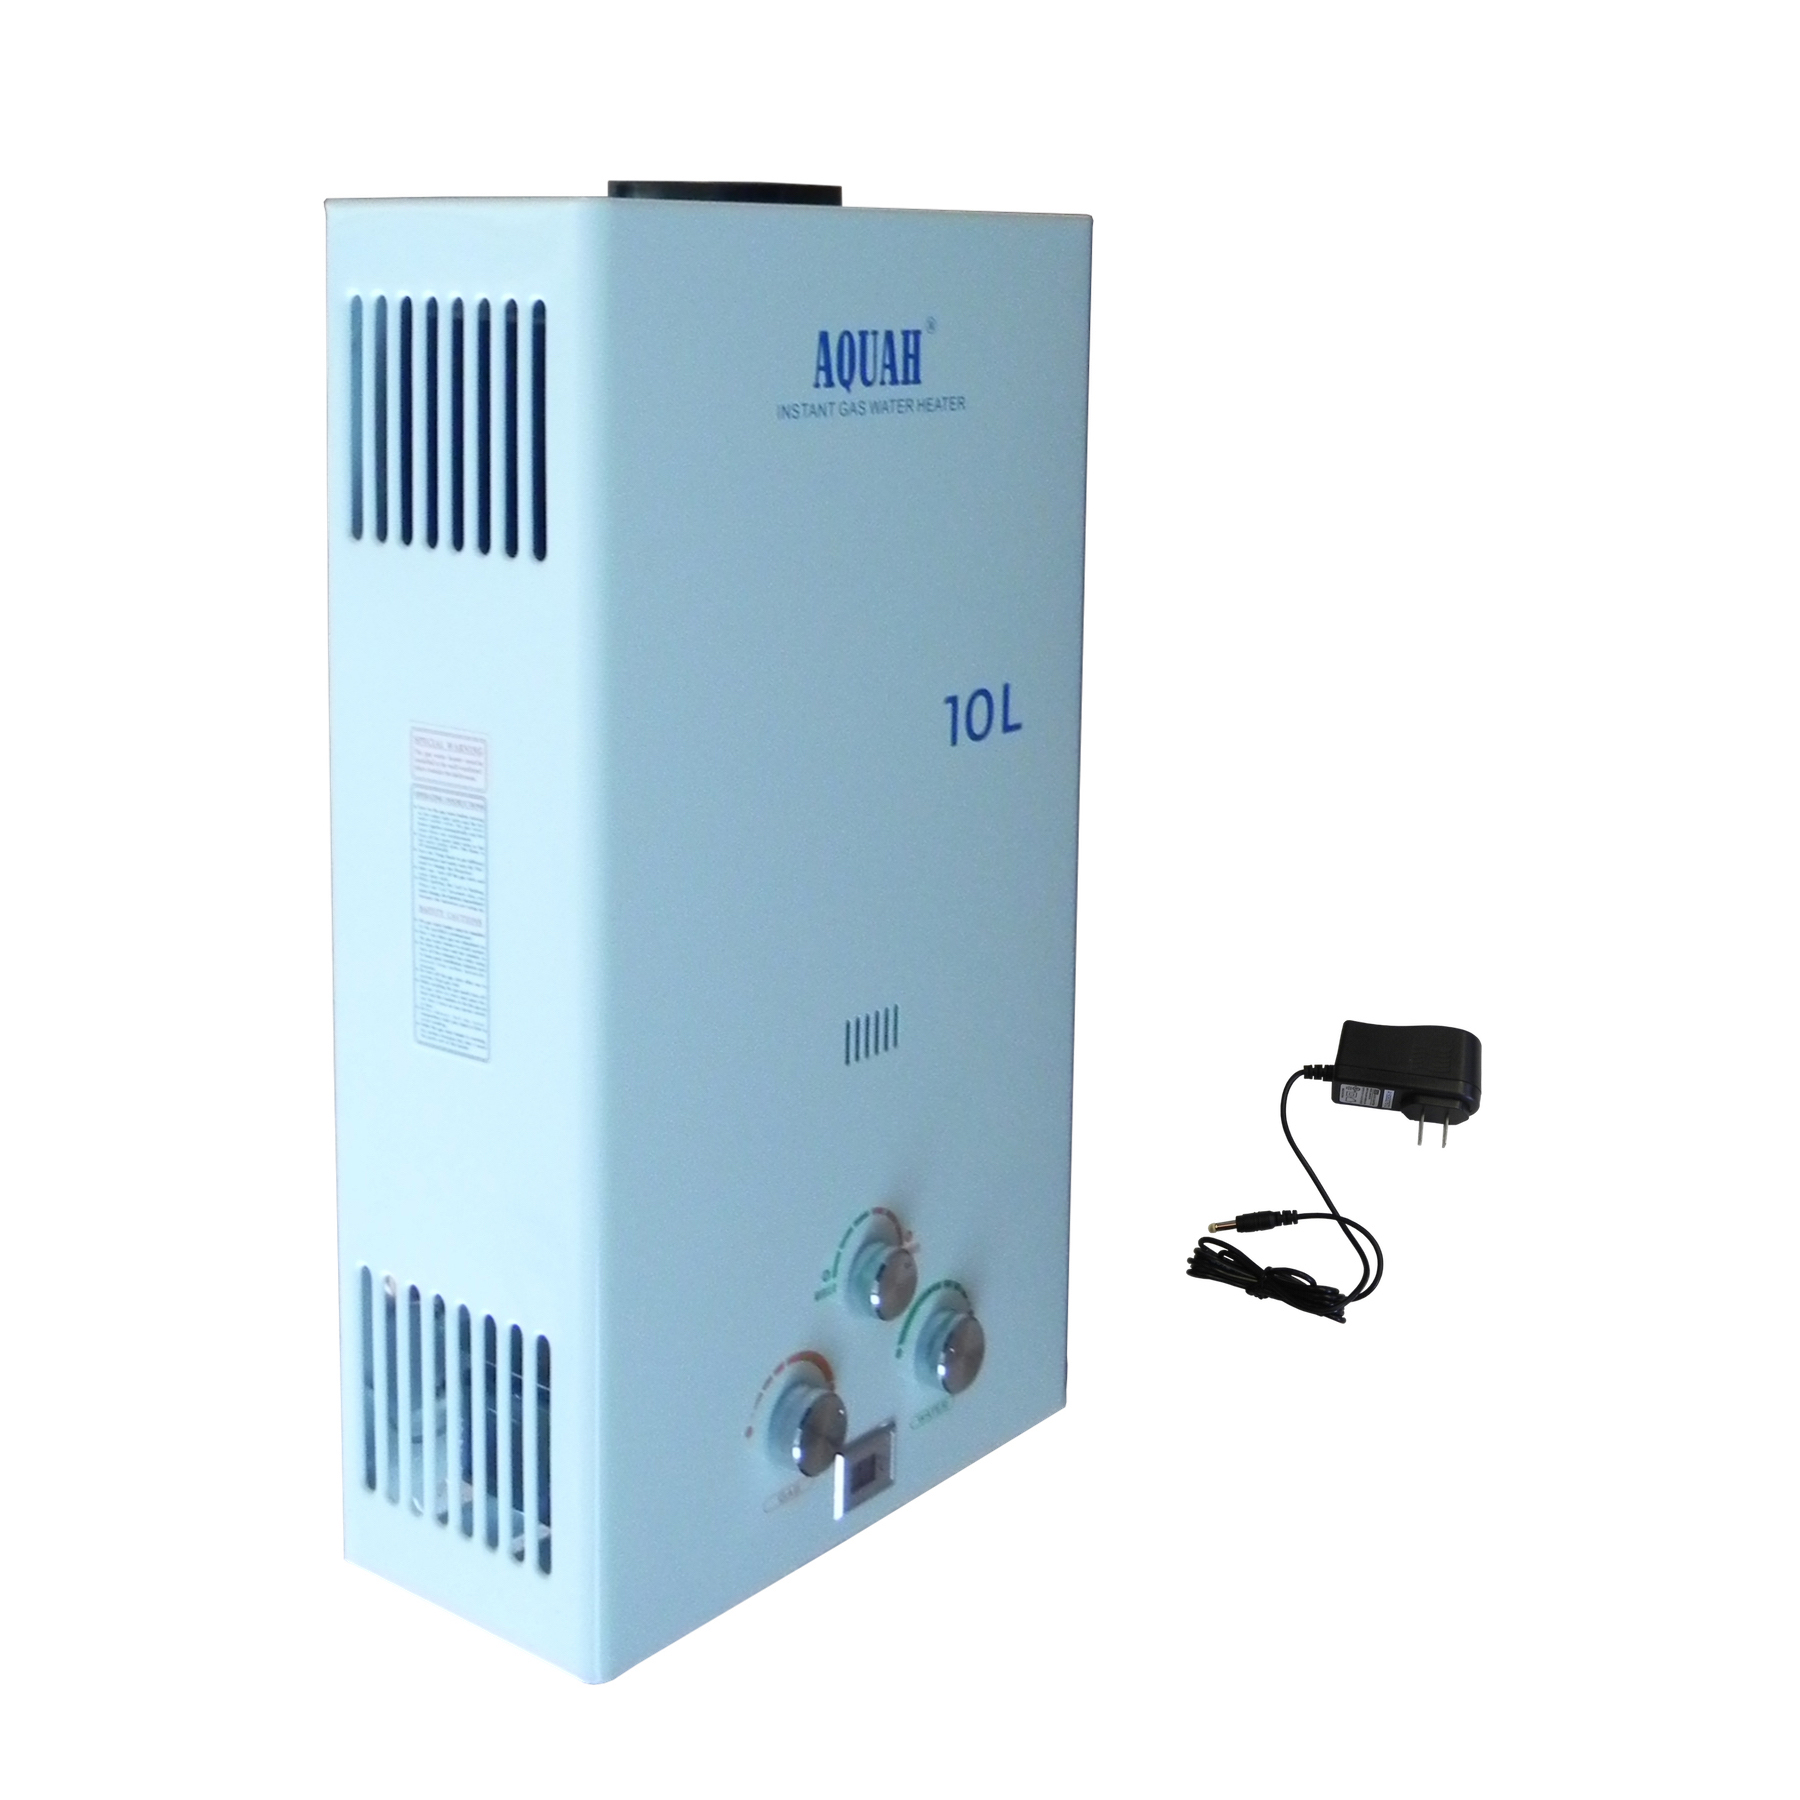 aquah 10l 265 gpm natural gas tankless water heater